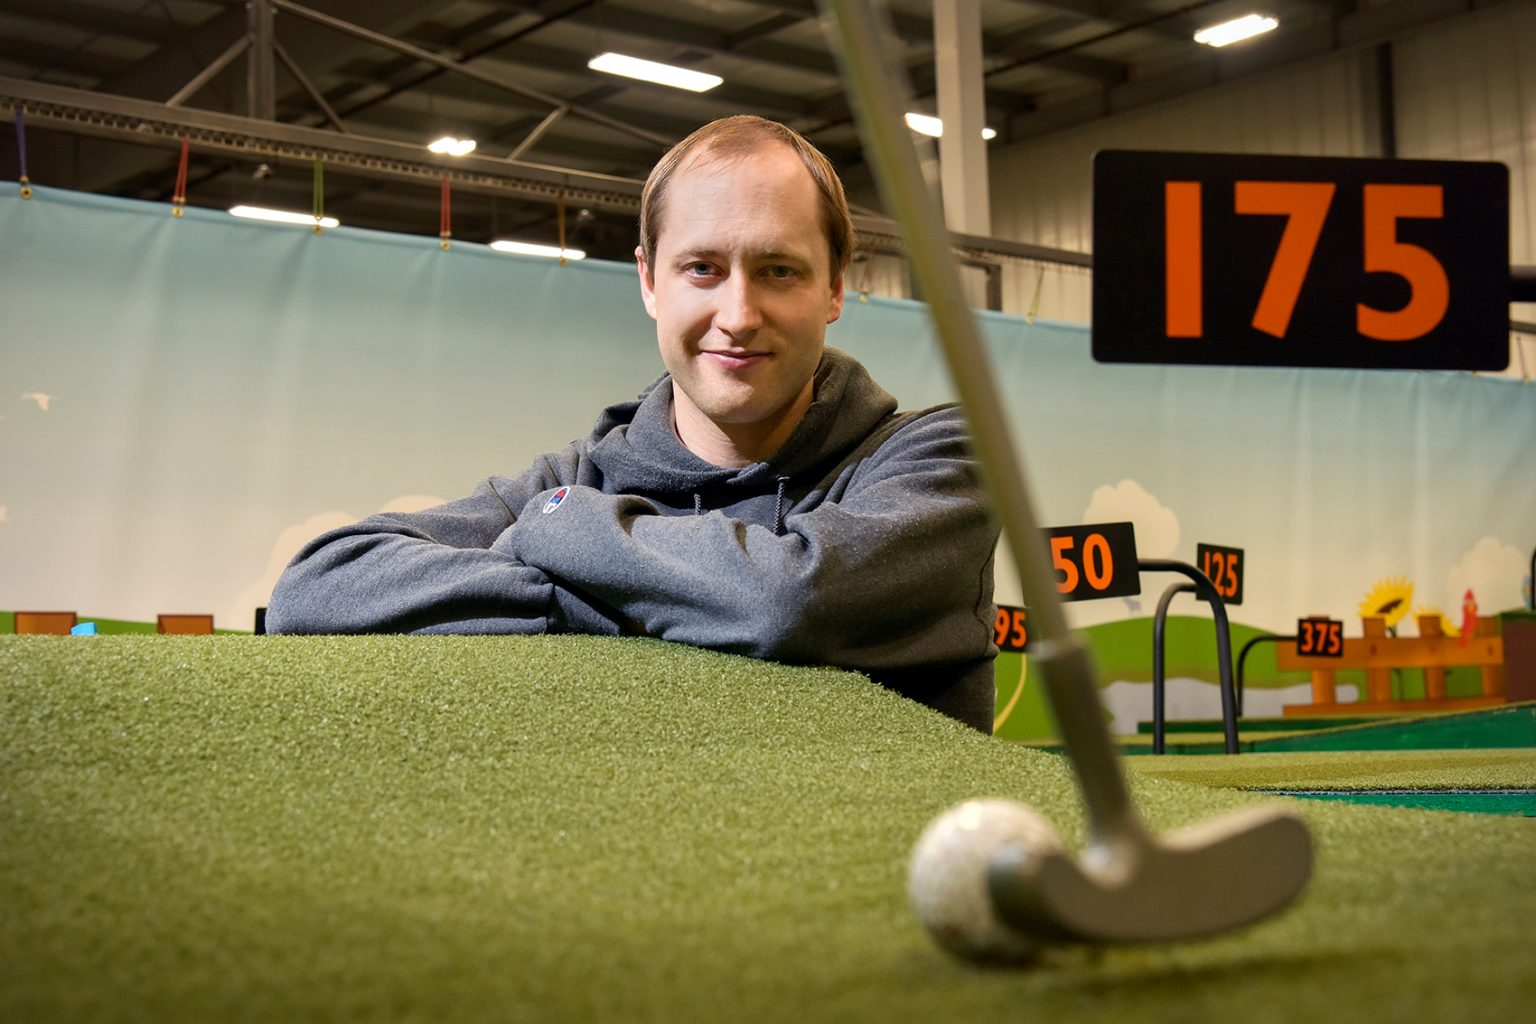 OneShot Golf's chief technical officer Tim Borgares. He says that the U of R is well represented in the company. In addition to the three principals, OneShot Golf employs graduate Denis Leanca BSc'20 and, at the time of writing, had four U of R co-op students and interns working for the firm.